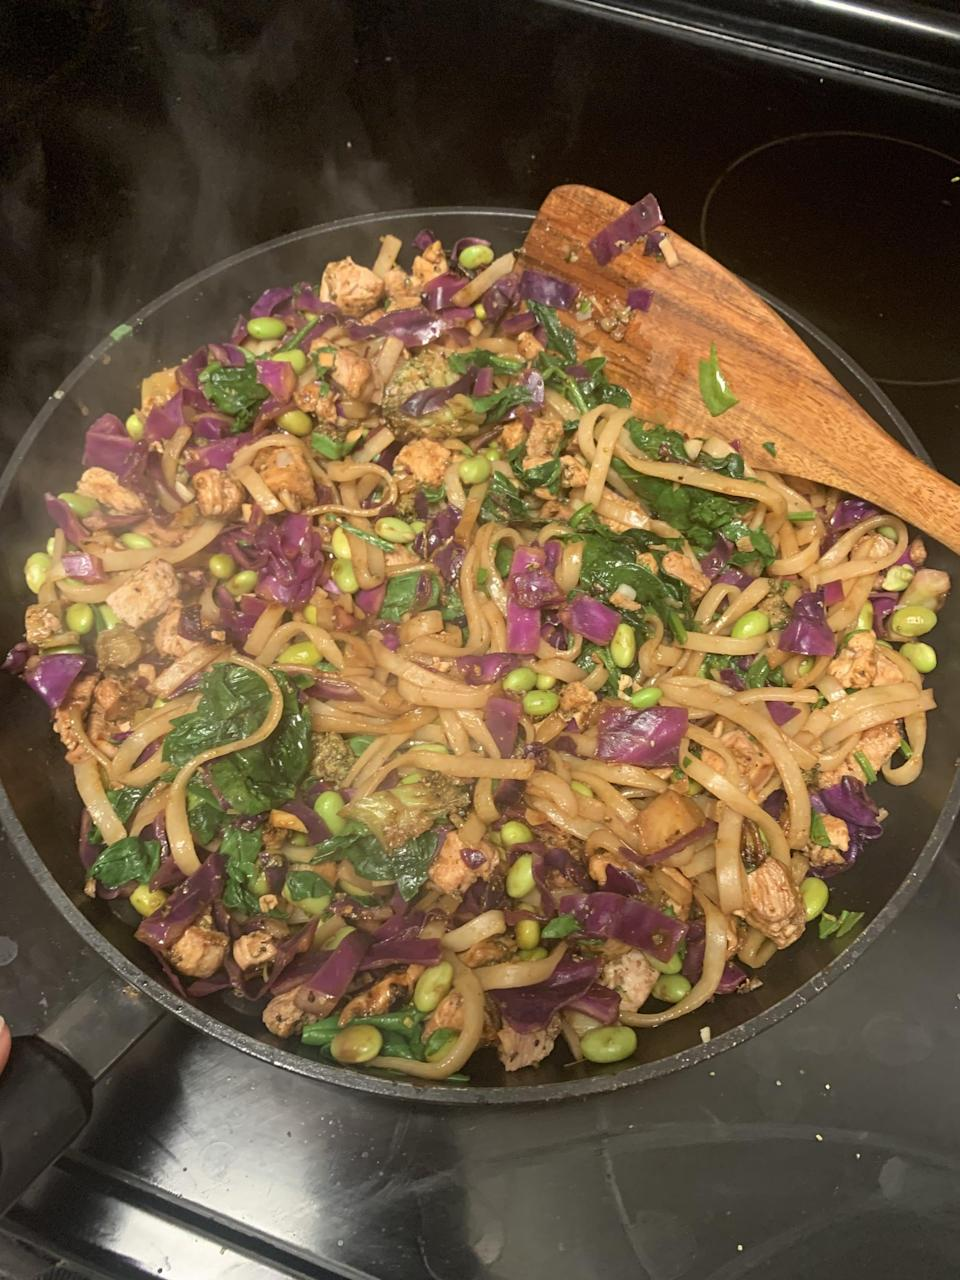 <p>To keep things interesting, I also tried the pasta with a red cabbage, chicken, spinach, and edamame beans covered in a sauce made of soy sauce, Sriracha, honey, and garlic. The noodles absorbed the sauce beautifully and acted as the perfect substitute for glass noodles. While they might not have much flavor on their own, they have a nice texture and hold flavors well, so I will definitely be experimenting with tons of new pasta recipes from now on.</p>